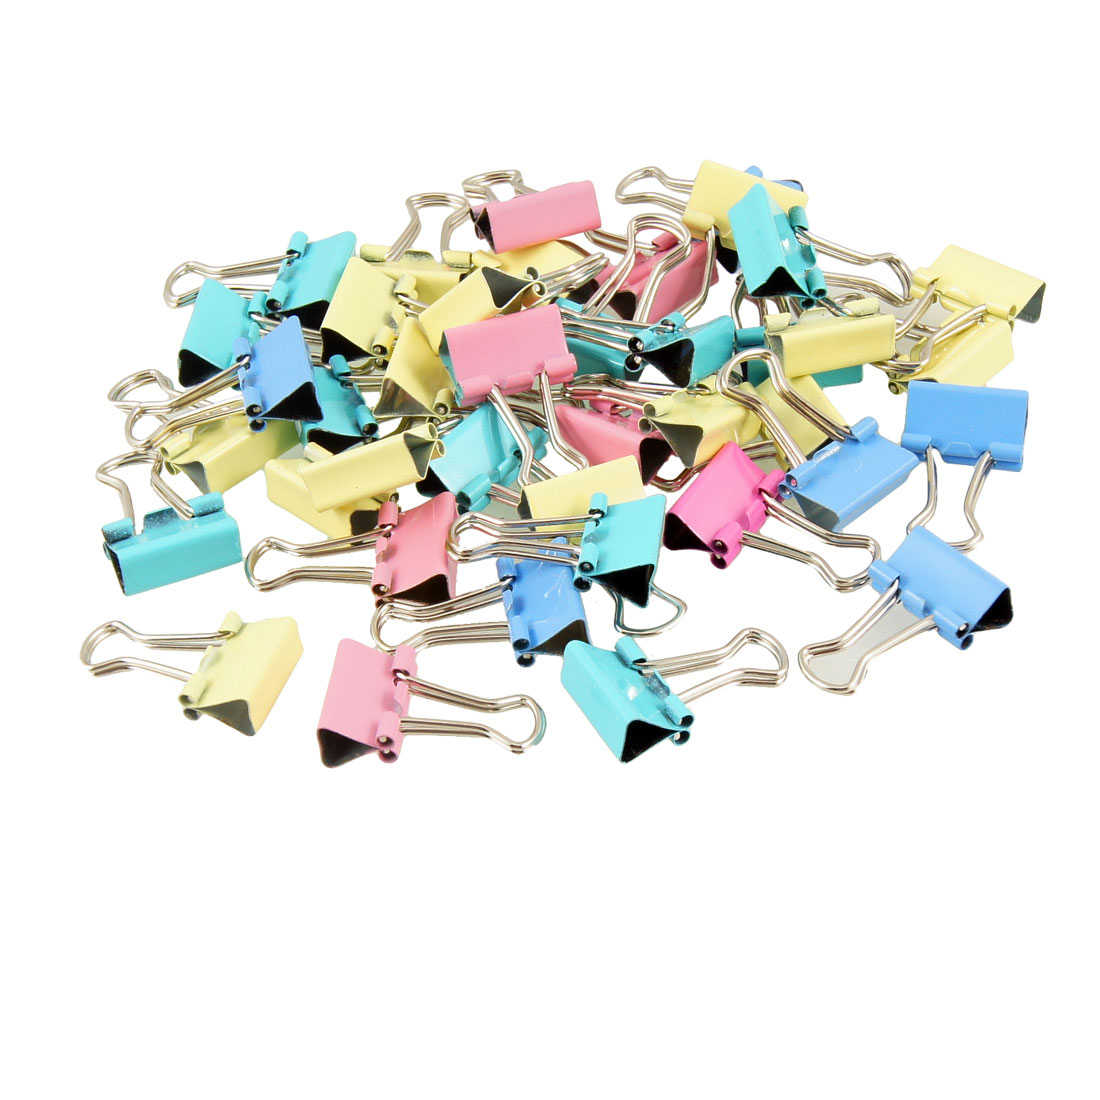 40 Pcs Office Assorted Color 15mm Width Metal Binder Clips